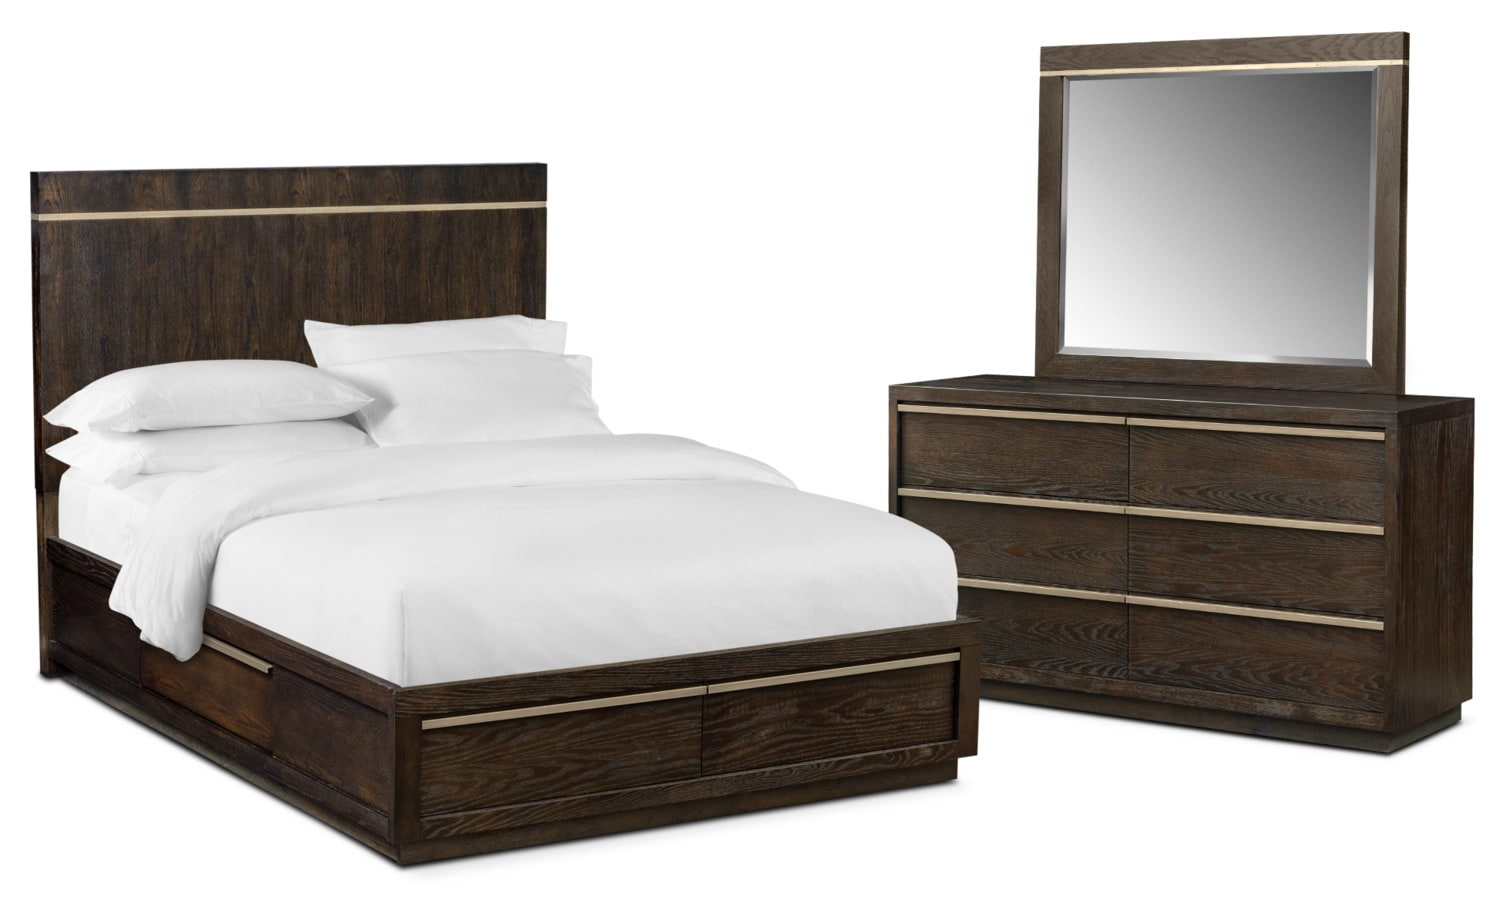 Bedroom Furniture - Gavin 5-Piece Storage Bedroom Set with Dresser and Mirror